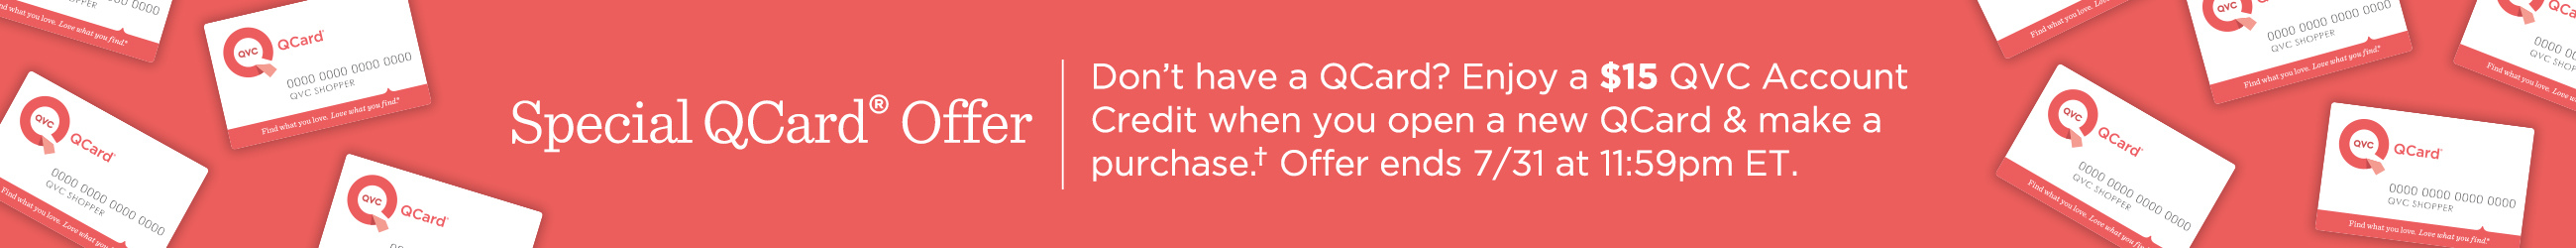 Special QCard® Offer Don't have a QCard? Enjoy a $15 QVC Account Credit when you open a new QCard & make a purchase.† Offer ends 7/31 at 11:59pm ET.